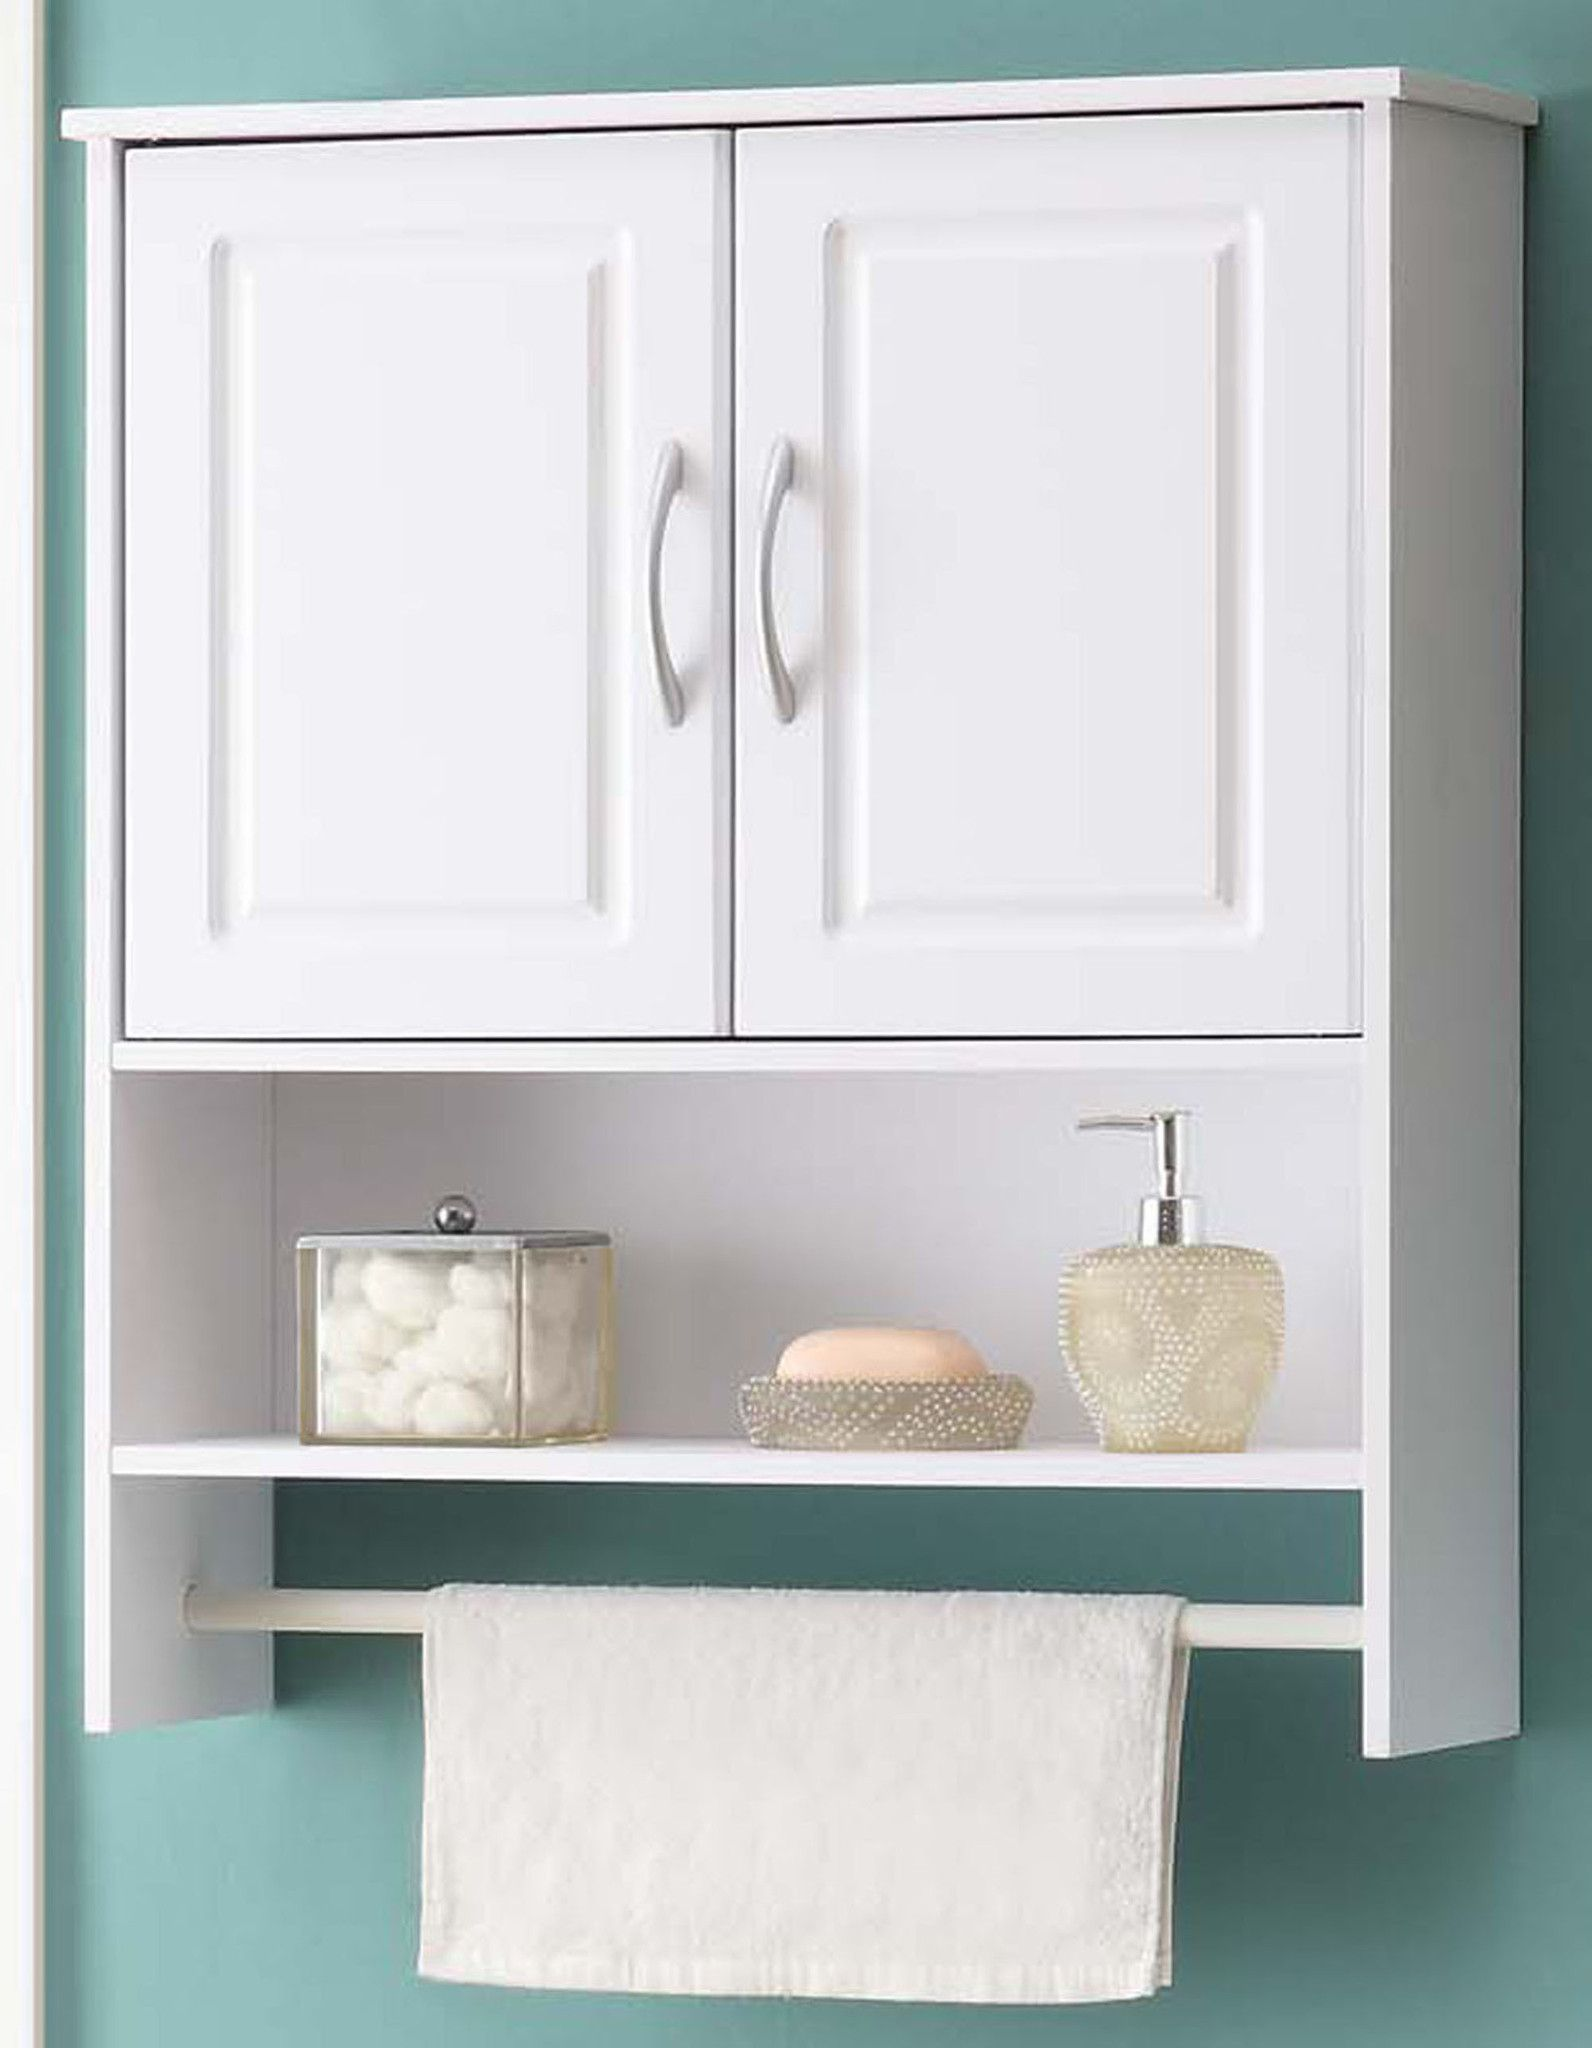 2 Door White Bathroom Wall Storage Cabinet Ideas For The House